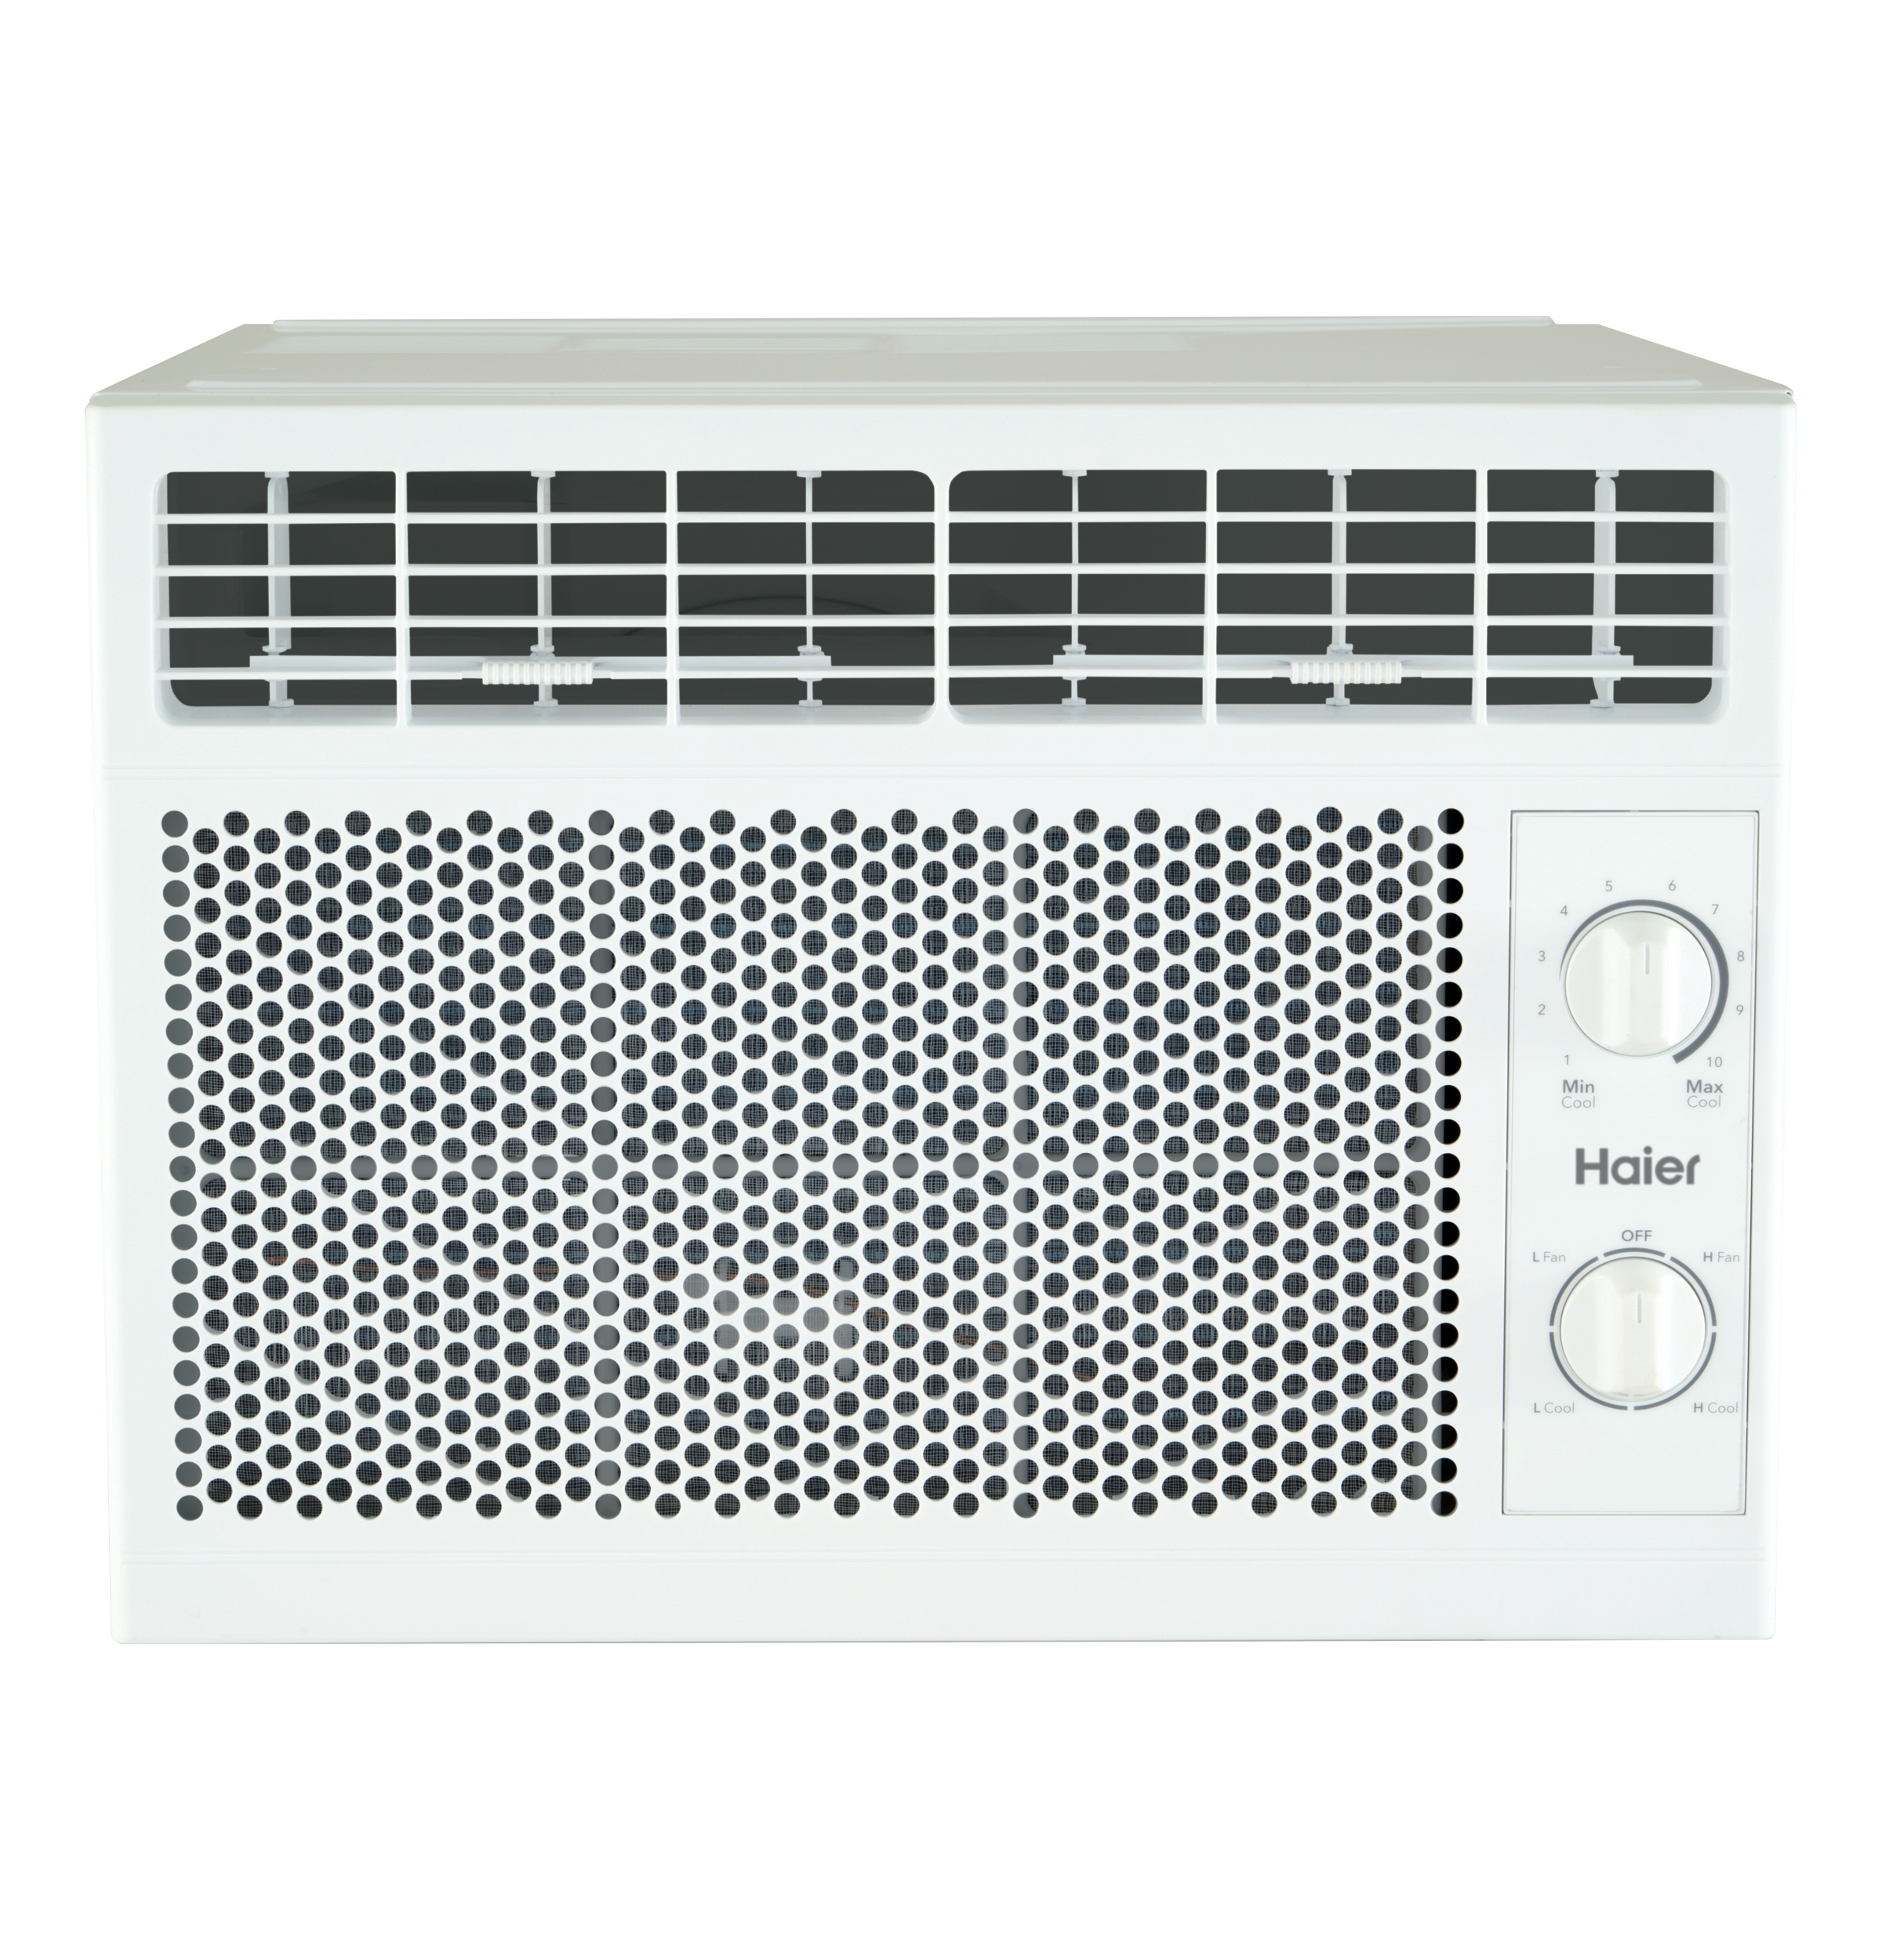 Haier Haier® 5,050 BTU Mechanical Window Air Conditioner for Small Rooms up to 150 sq. ft.